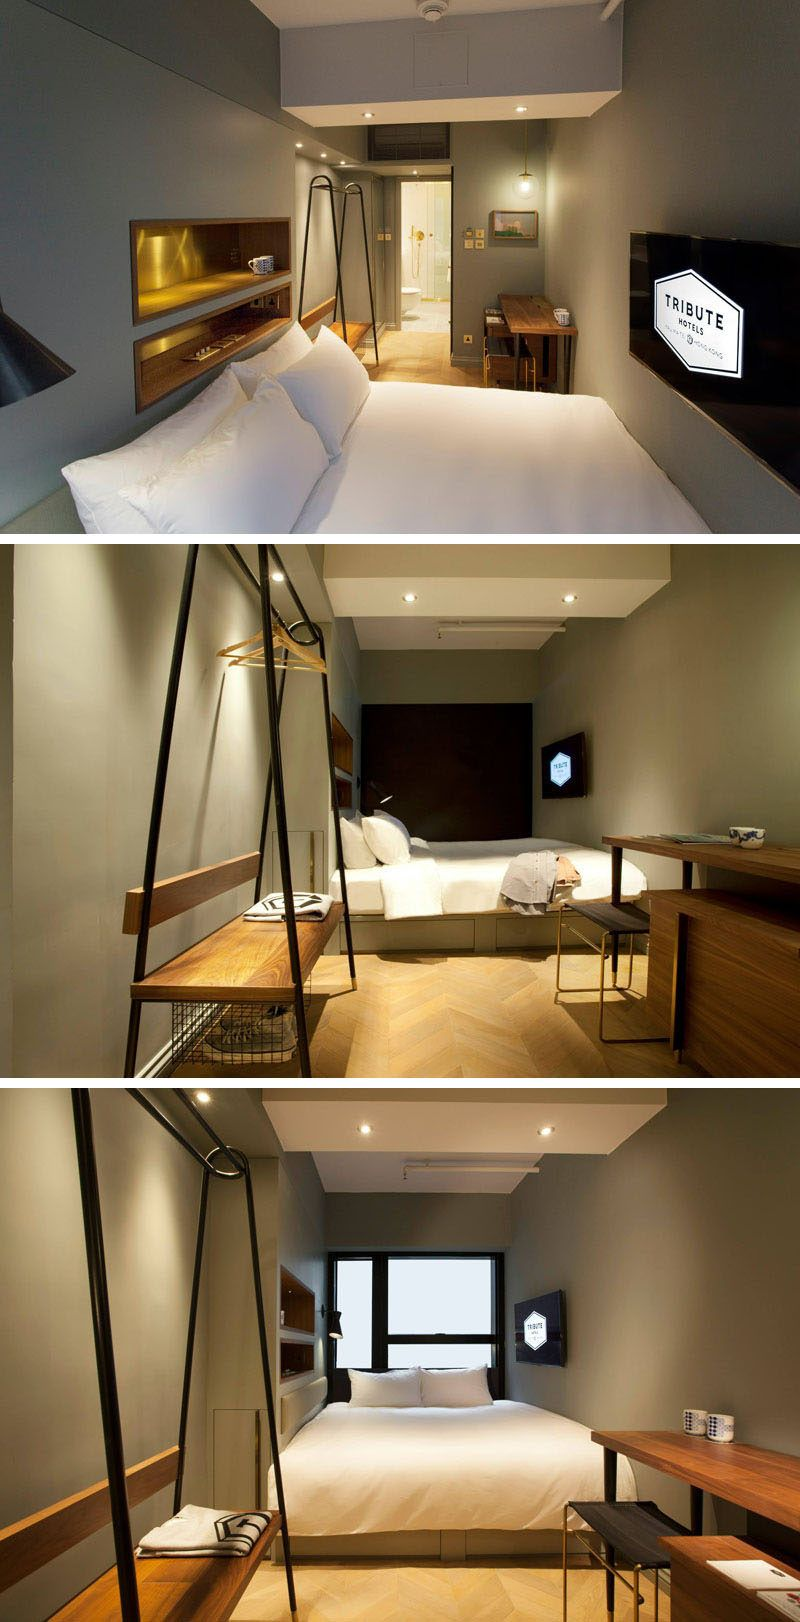 Interior Design For Living Room For Small Space: 8 Small Hotel Rooms That Maximize Their Tiny Space